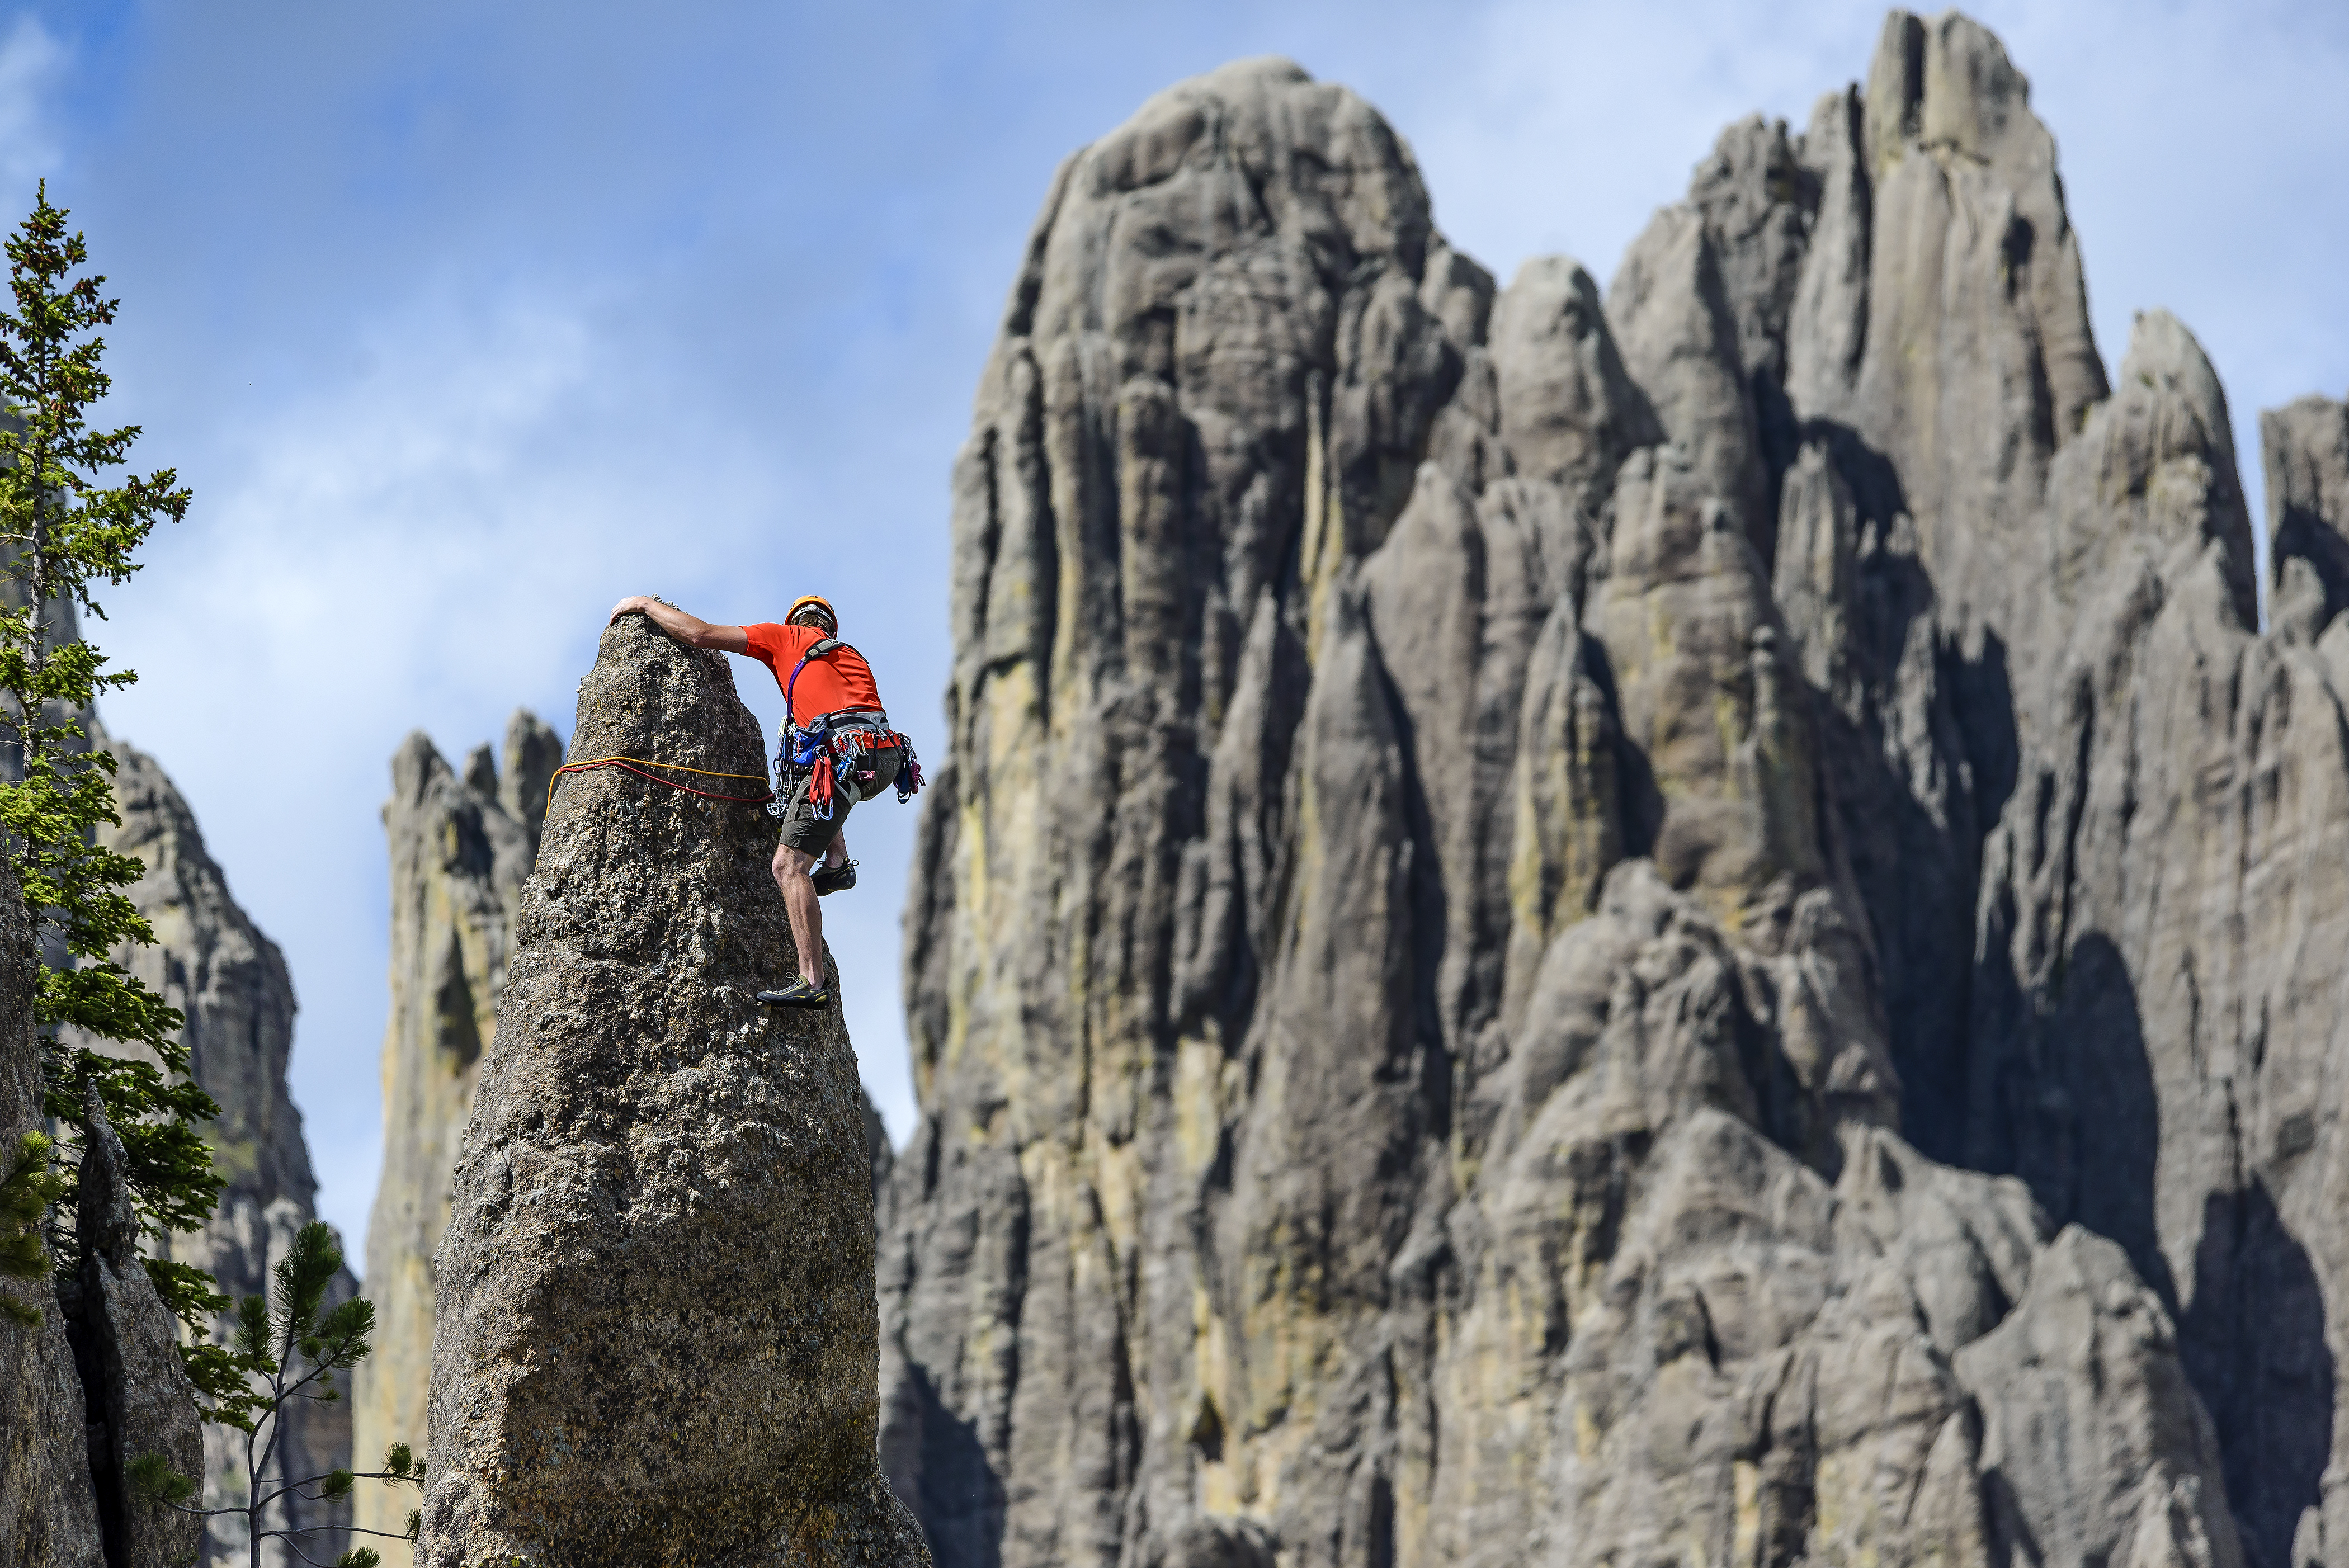 """Rock climber at the top of a """"needle"""" in South Dakota with mountains in background"""